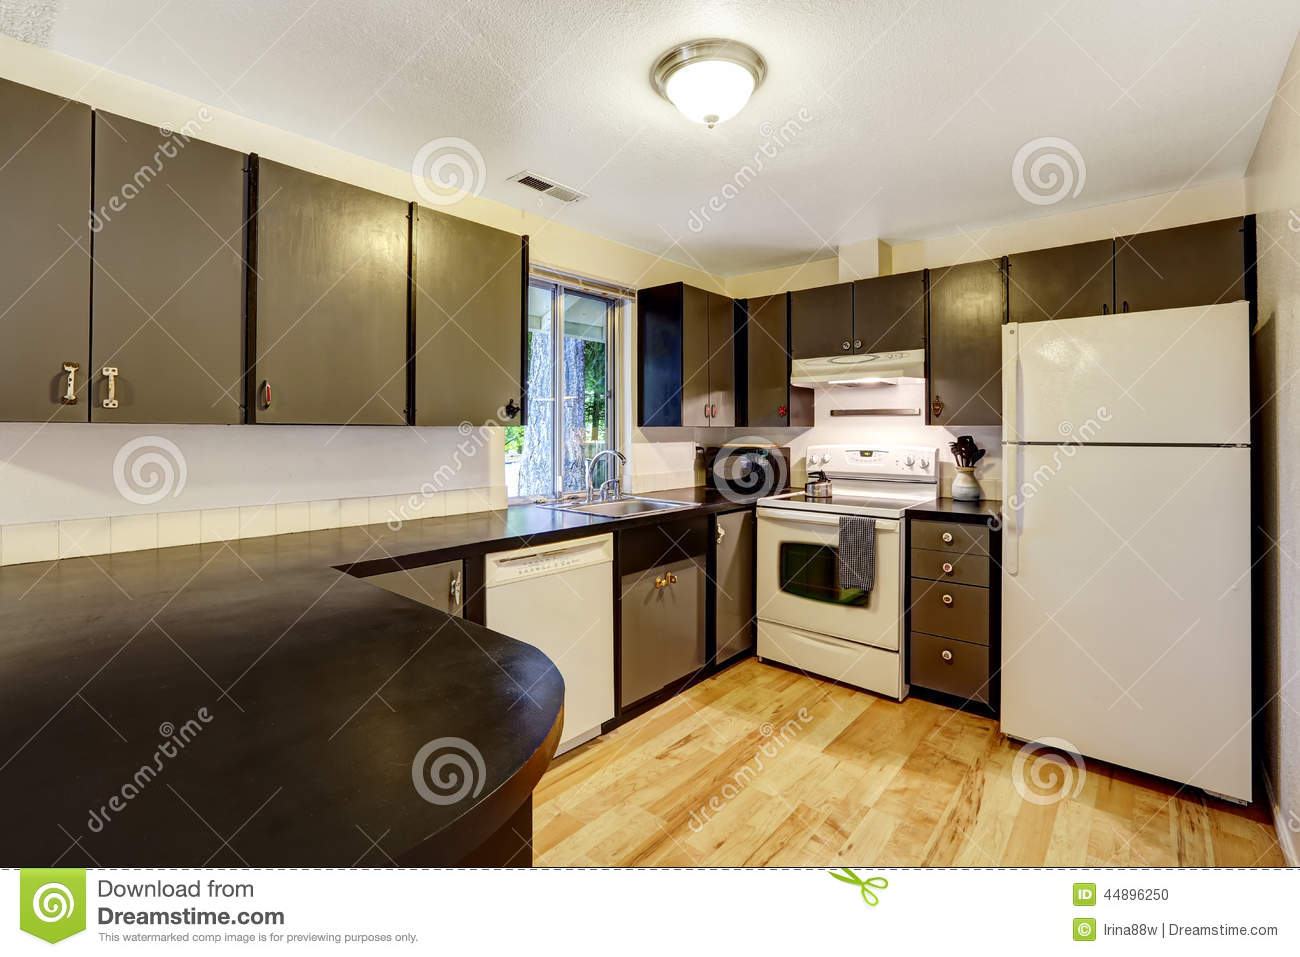 Kitchen Room In Contrast White And Black Colors Stock Photo Image Of Kitchen Northwest 44896250